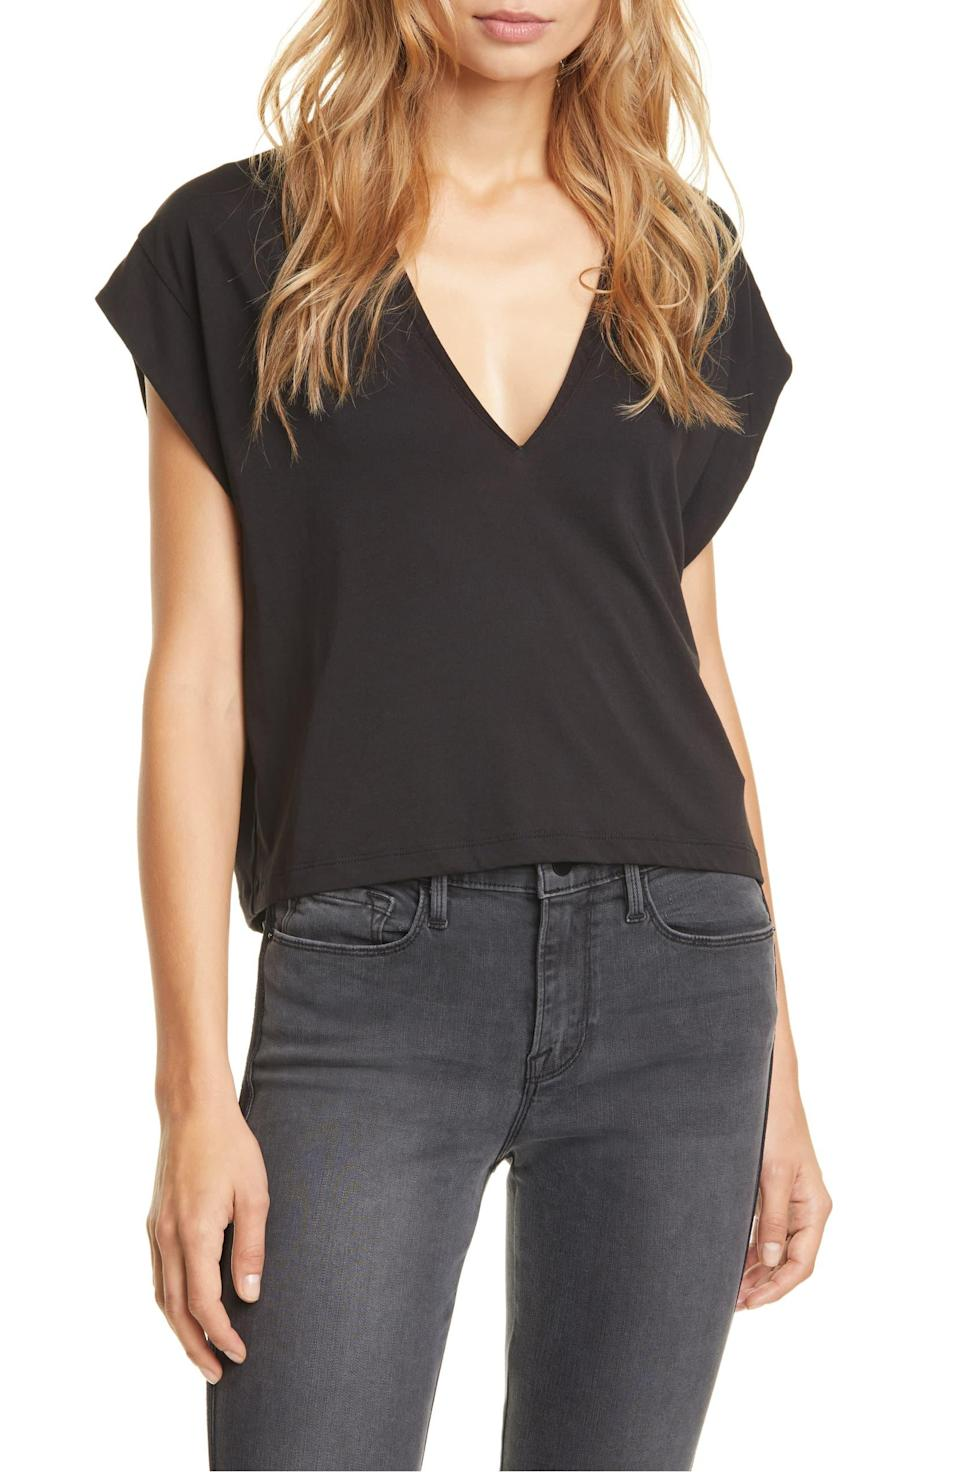 """We'll call this cutie """"purposefully disheveled."""" $85, Nordstrom. <a href=""""https://shop.nordstrom.com/s/frame-le-mid-rise-v-neck-tee/5351679"""" rel=""""nofollow noopener"""" target=""""_blank"""" data-ylk=""""slk:Get it now!"""" class=""""link rapid-noclick-resp"""">Get it now!</a>"""